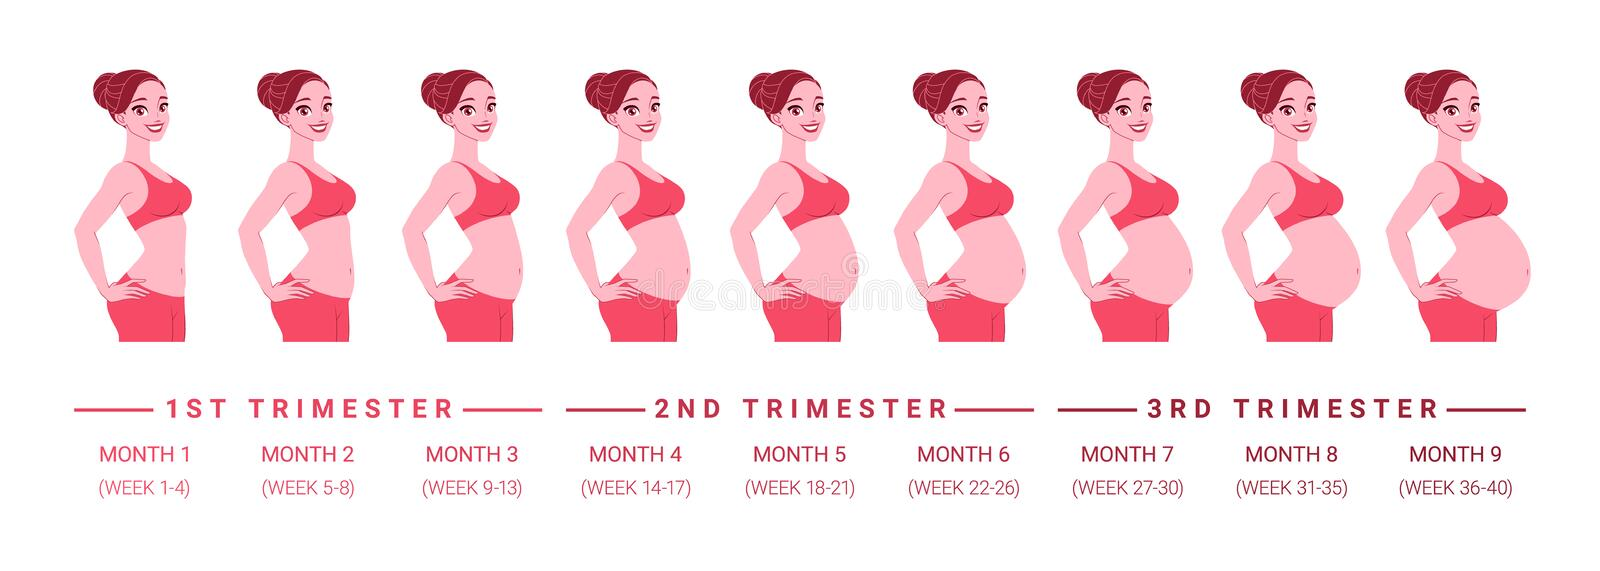 Pregnancy development by months. Isolated vector illustration. vector illustration